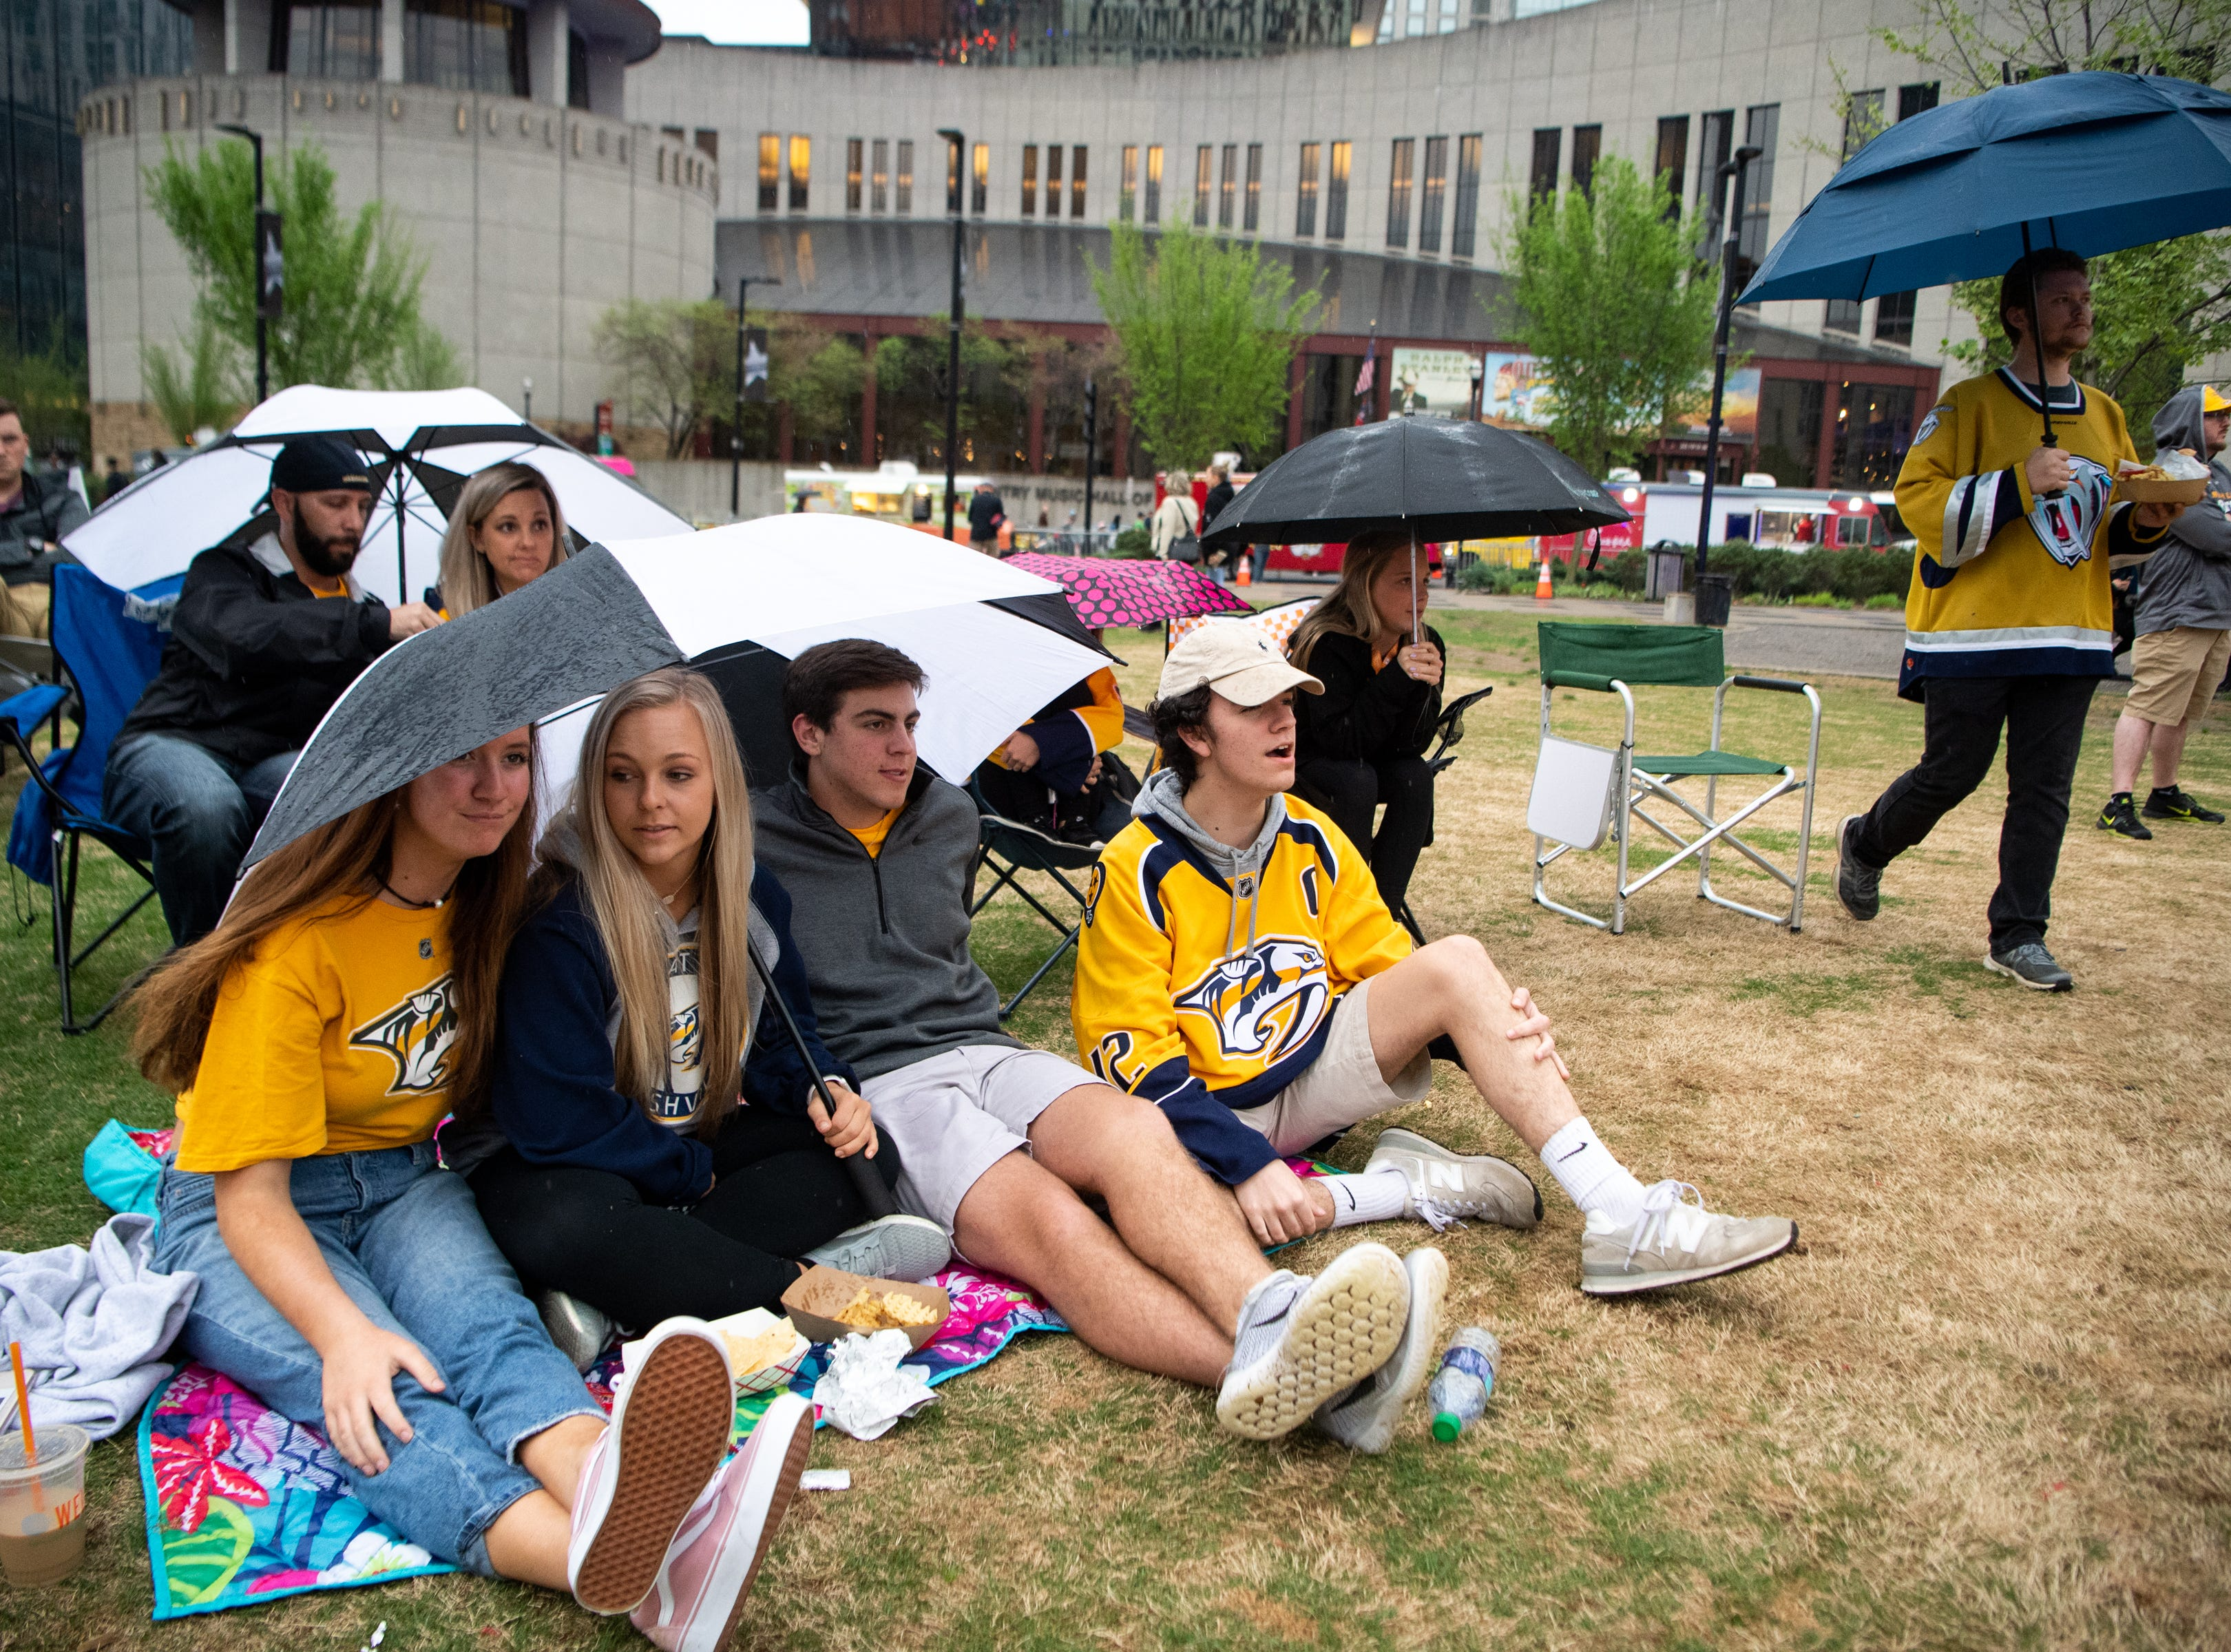 Fans share an umbrella during the second period of the Nashville Predators game against the Dallas Stars at Preds Party in the Park at Walk of Fame Park Saturday, April 13, 2019, in Nashville, Tenn.